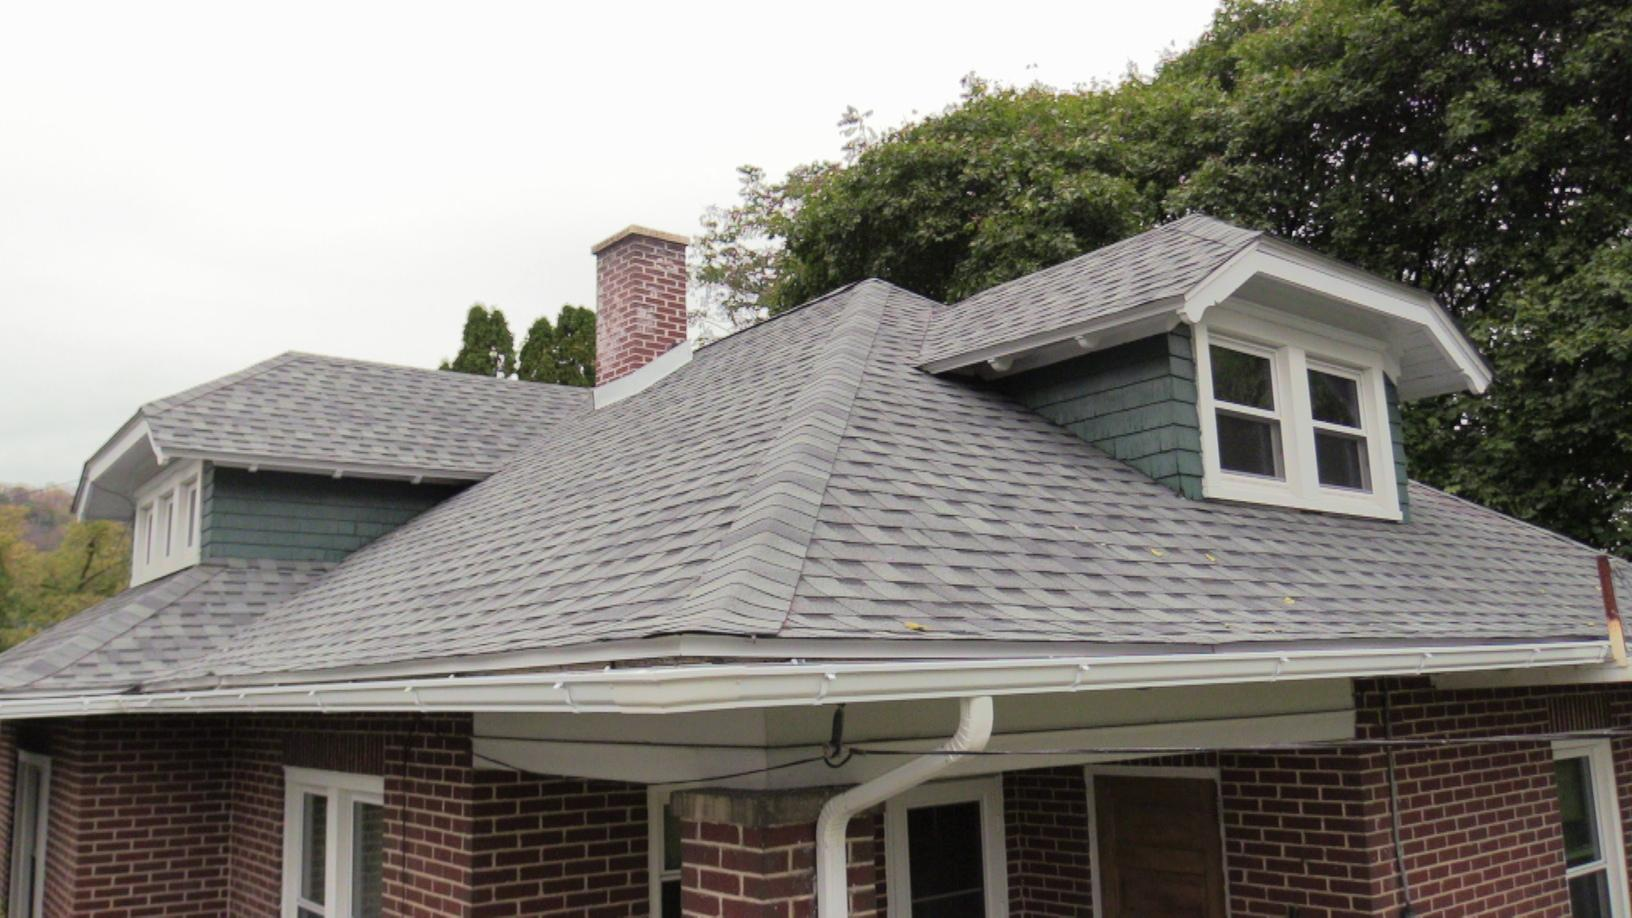 Getting Every Corner With Those Shingles